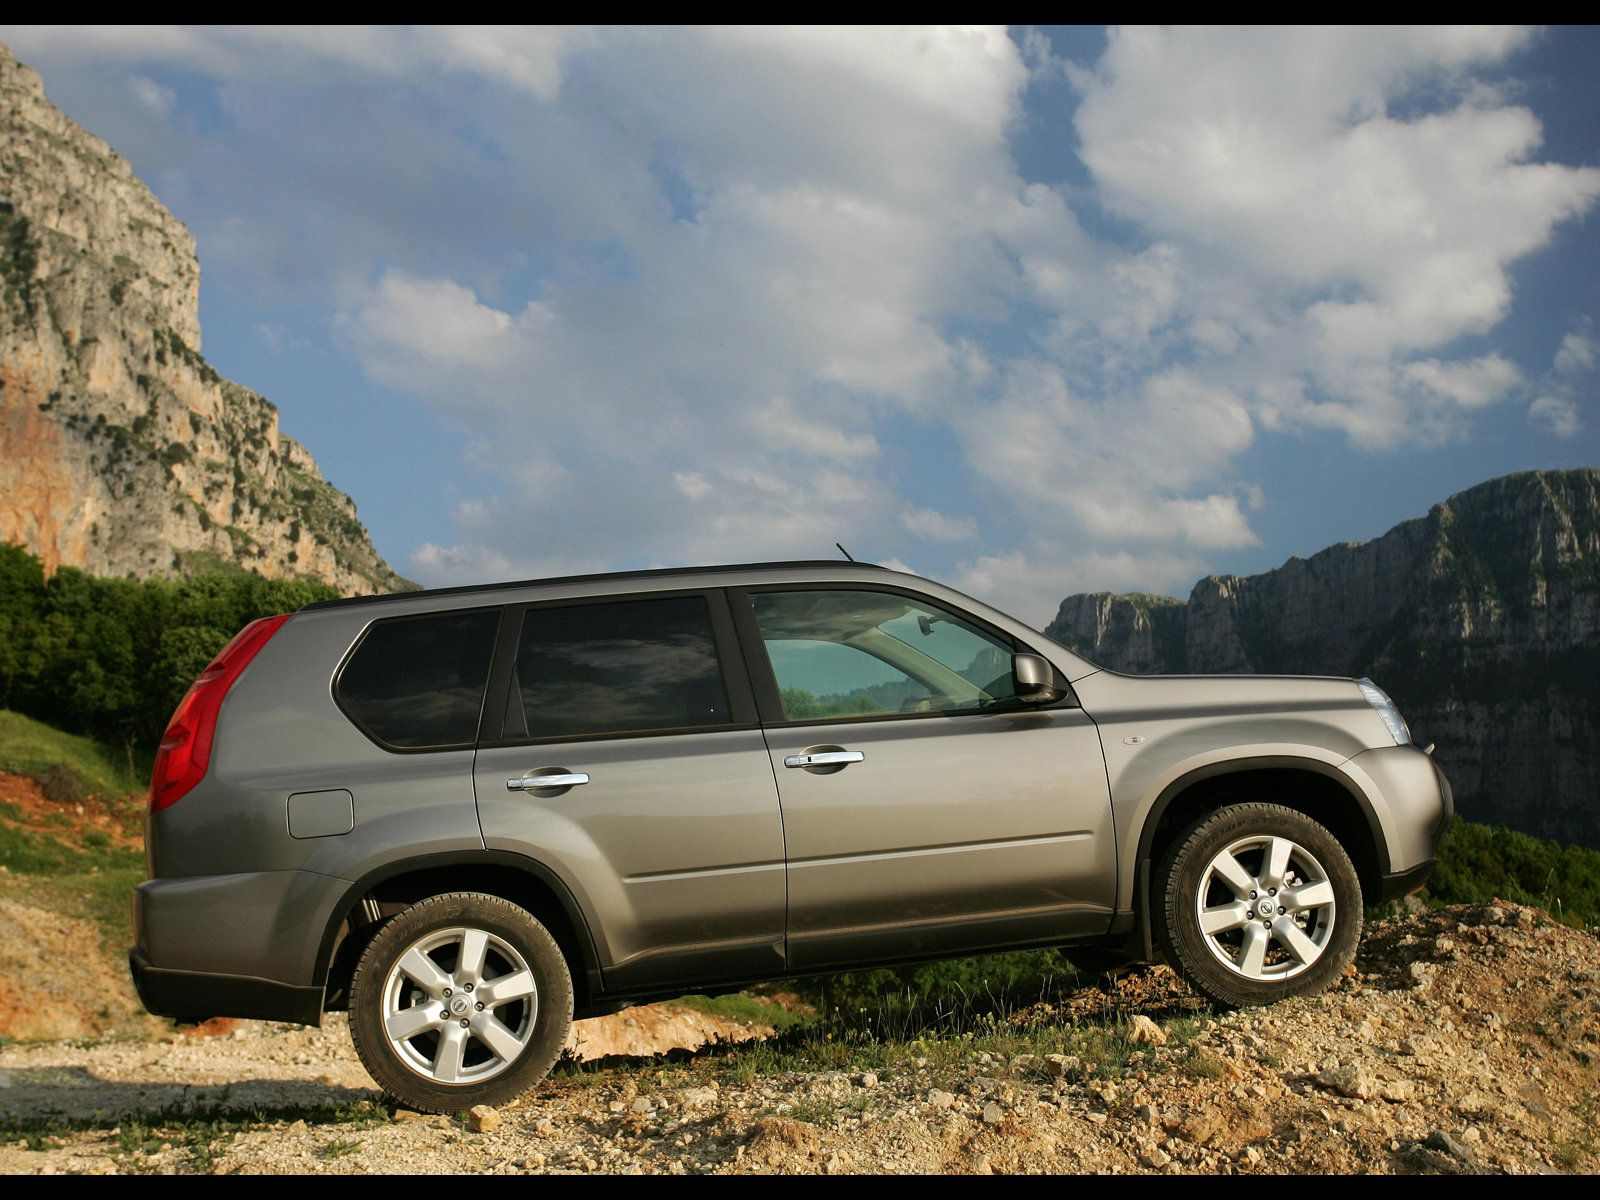 2008 nissan x trail 2 pictures information and specs auto. Black Bedroom Furniture Sets. Home Design Ideas